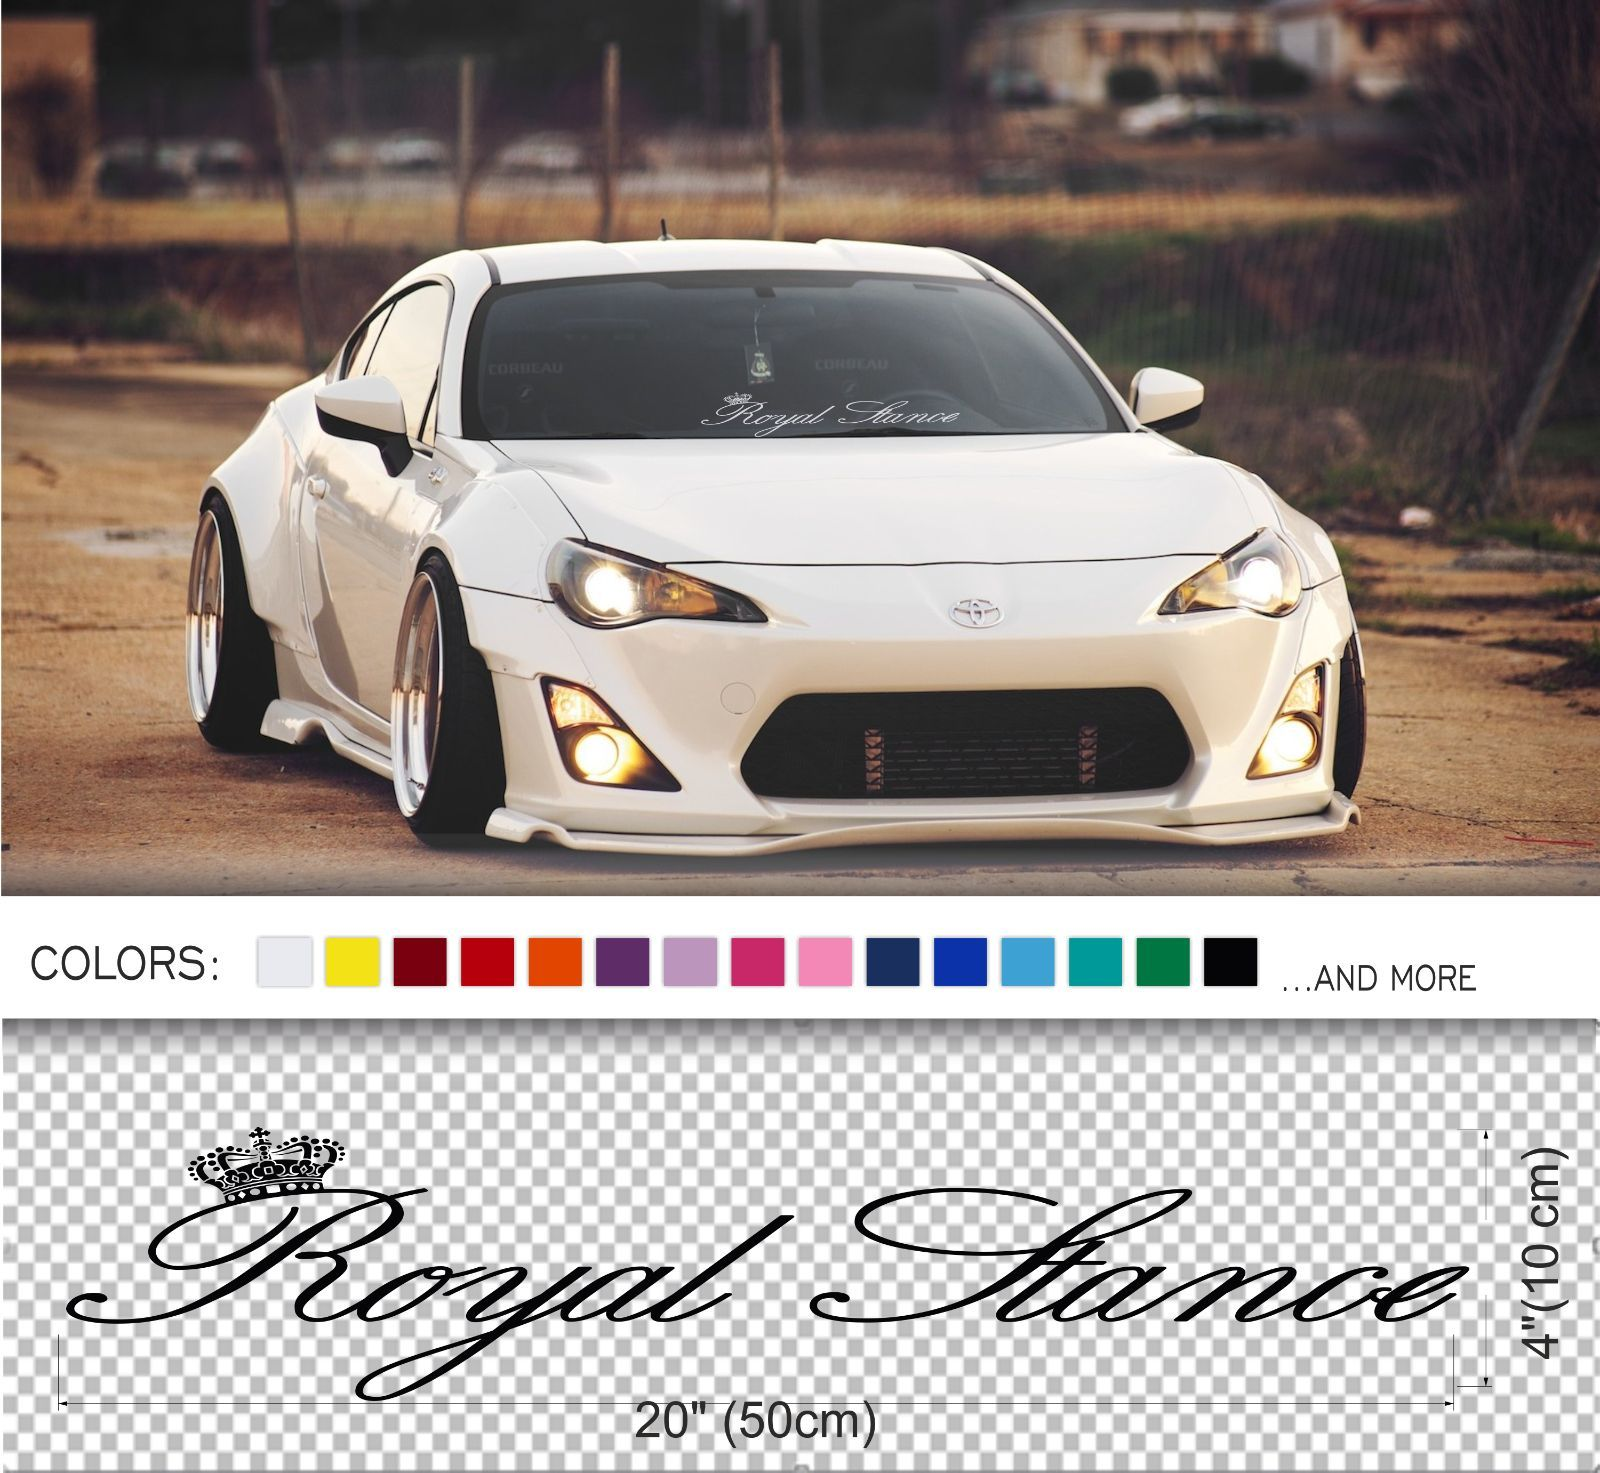 Royal stance 20 size windshield windscreen glass classic car jdm decal sticker